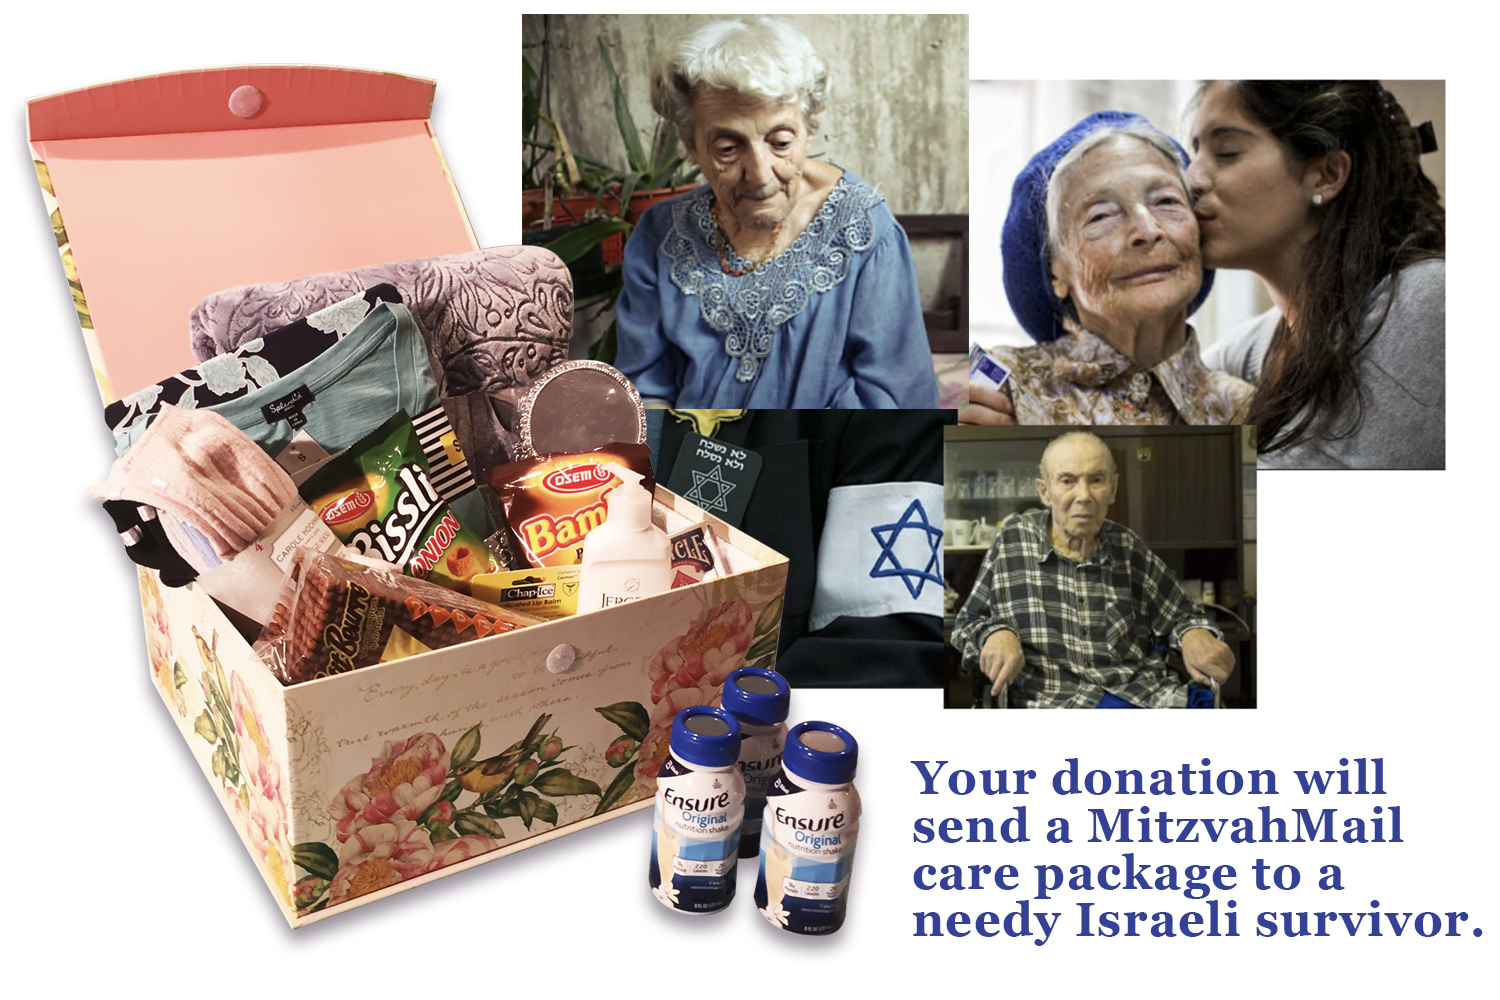 Imagine the delight when a survivor receives a package of goodies, toiletries and other sundry items, along with a personal note of love and support from you.  We are partnering with Aviv for Holocaust Survivors to identify needy survivors and to ship them a box of love and hope from you.  Each MitzvahMail package includes:    •. A warm, cozy blanket / throw •. Mens or ladies pajamas •. Warm, fleecy socks •. Personal care items (skin lotion and lip balm) •. Ensure® Original nutritional drink •. A deck of playing cards •. Familiar Israeli goodies and treats •. ... and a hand mirror so they can see how beautiful they are to us.    Our costs to acquire items, package them and ship is approximately $100 per MitzvahMail package.  We will ship one for every $100 received.  For every $100 donation, we urge you to email your personal note for inclusion in your MitzvahMail package.  Please e-mail  richard@themankindproject.org  with your message.    Your donation of any amount would be greatly appreciated and go to immediate survivor aid.  Please click the donate button.